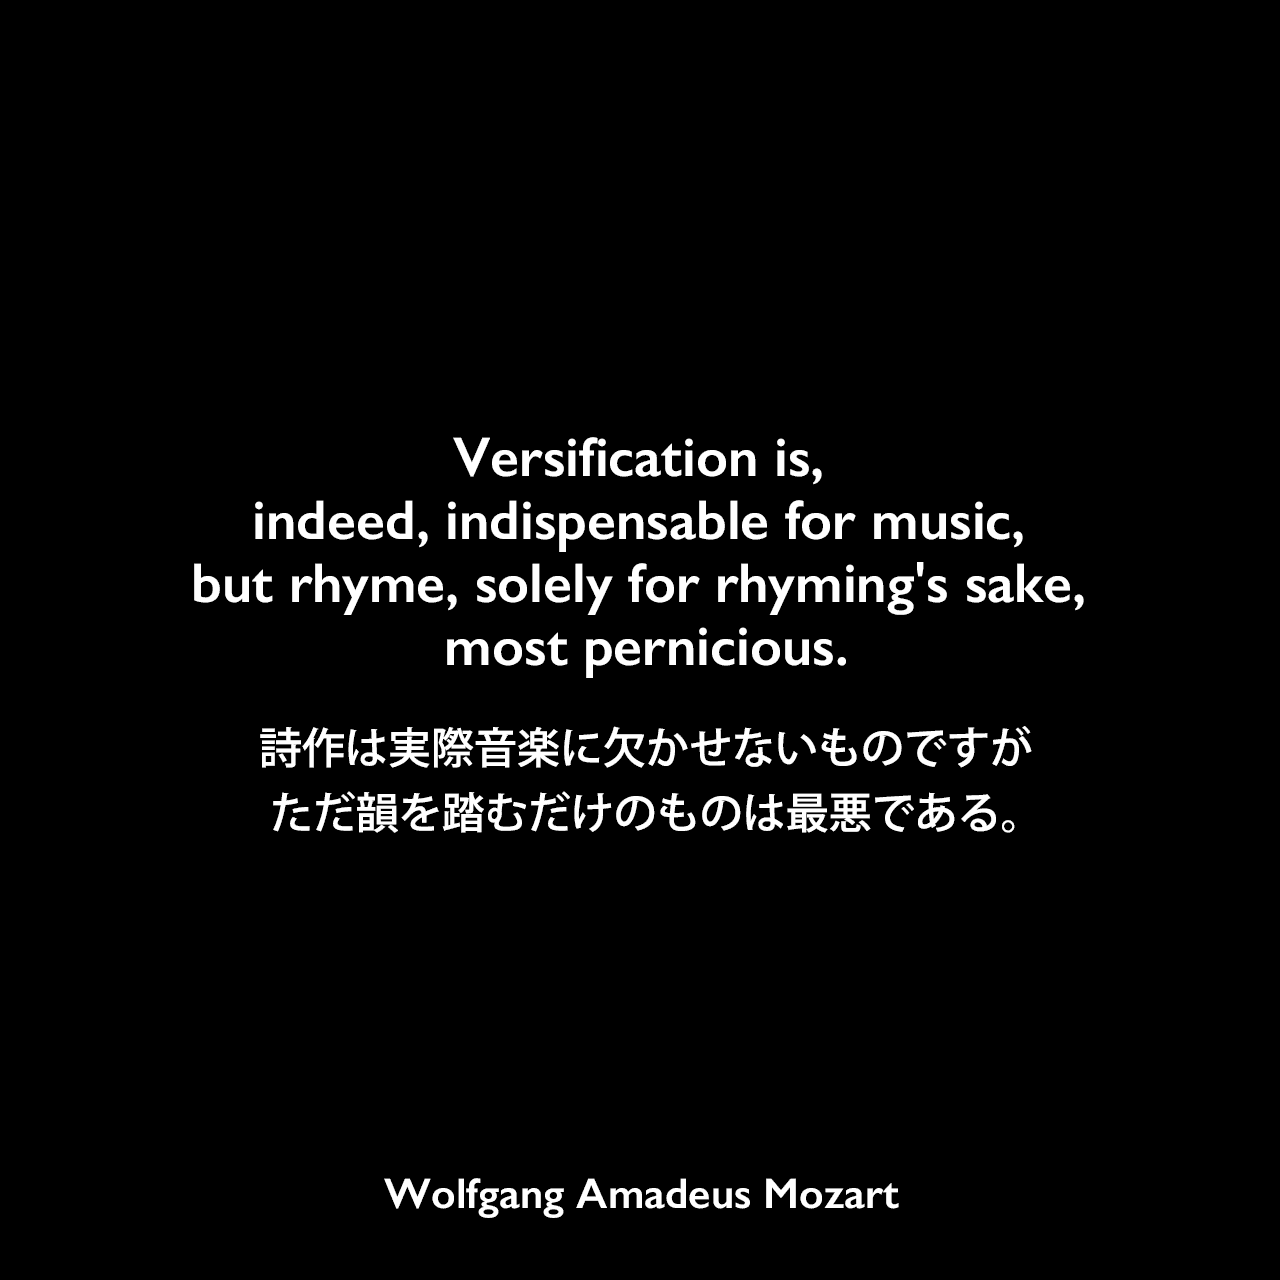 Versification is, indeed, indispensable for music, but rhyme, solely for rhyming's sake, most pernicious.詩作は実際音楽に欠かせないものですが、ただ韻を踏むだけのものは最悪である。Wolfgang Amadeus Mozart